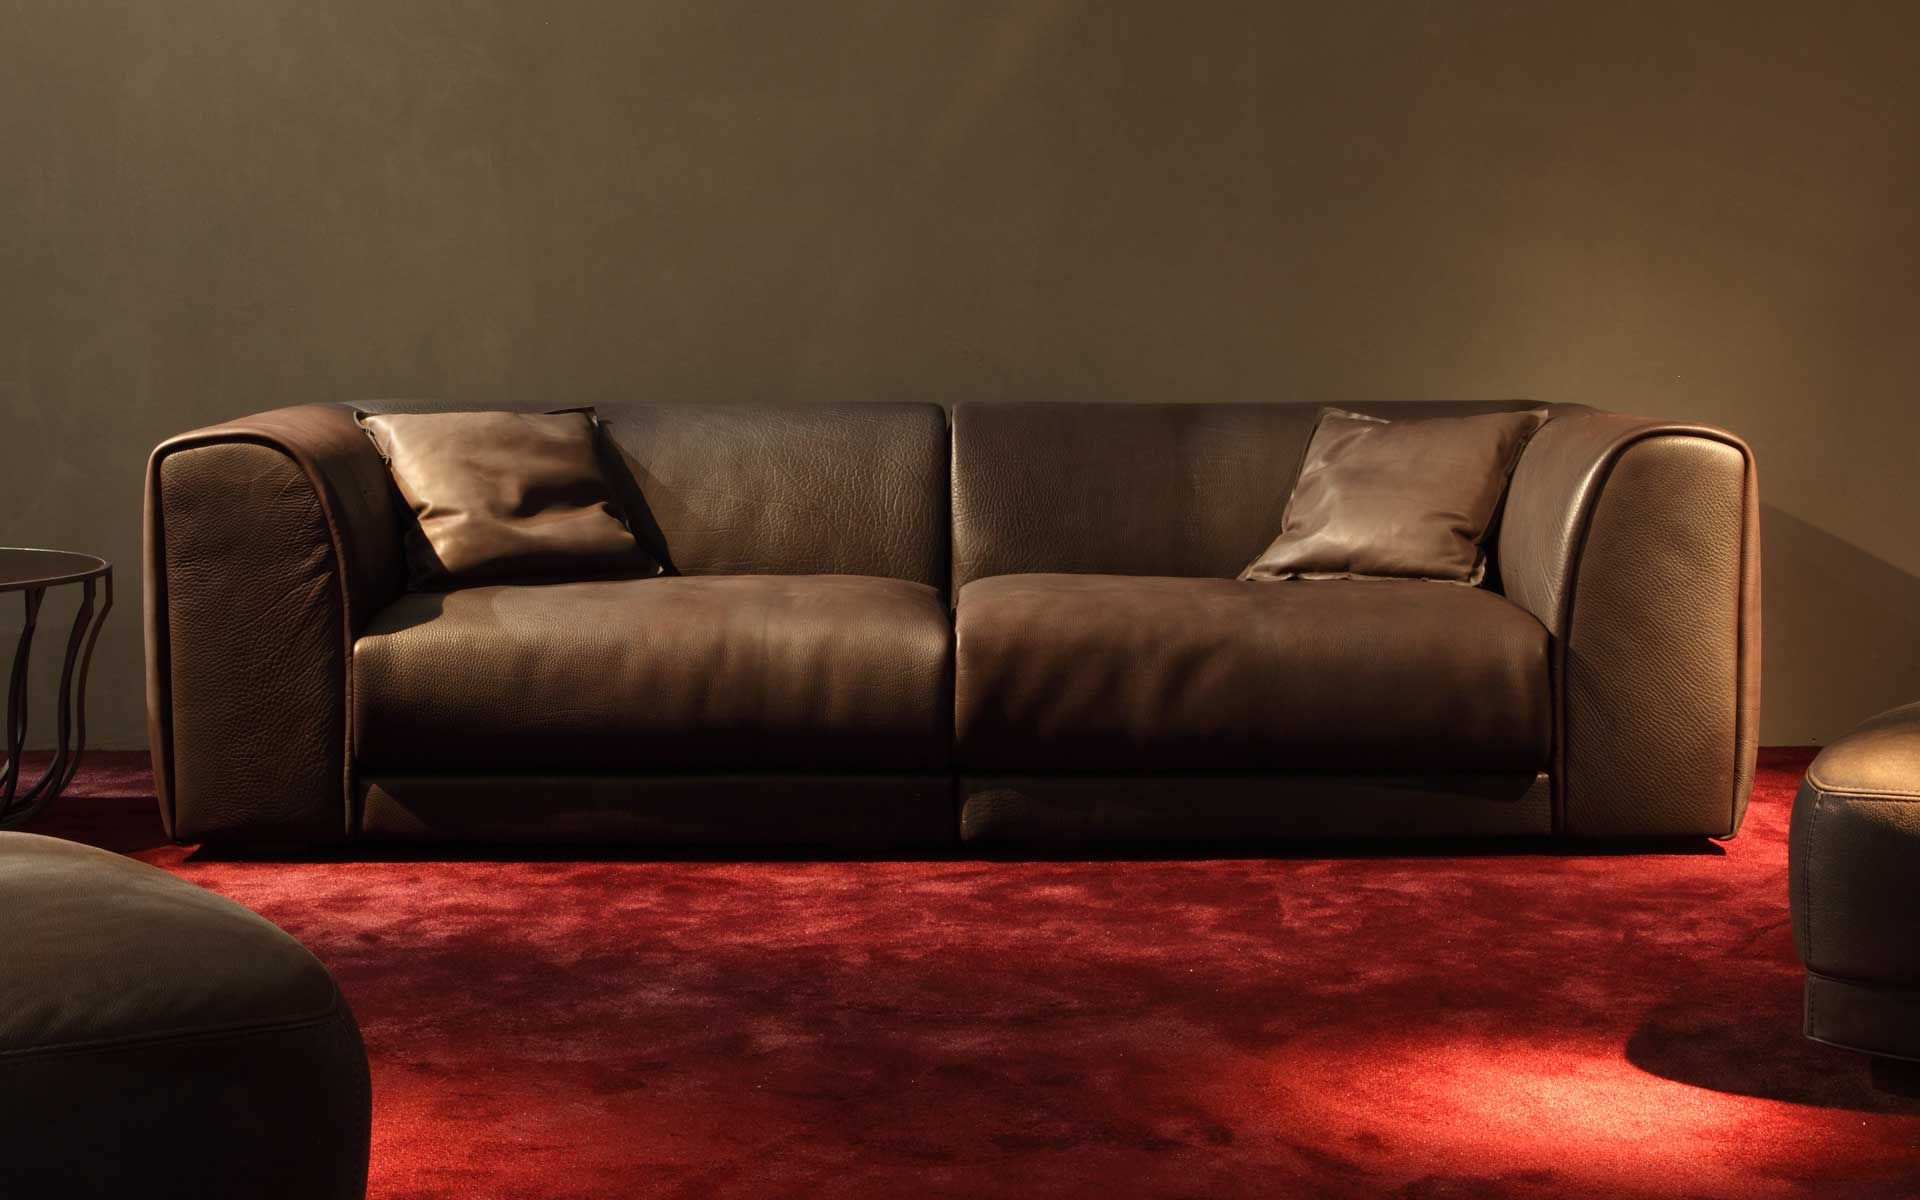 RAFAEL sofa by BAXTER made in Italy furniture